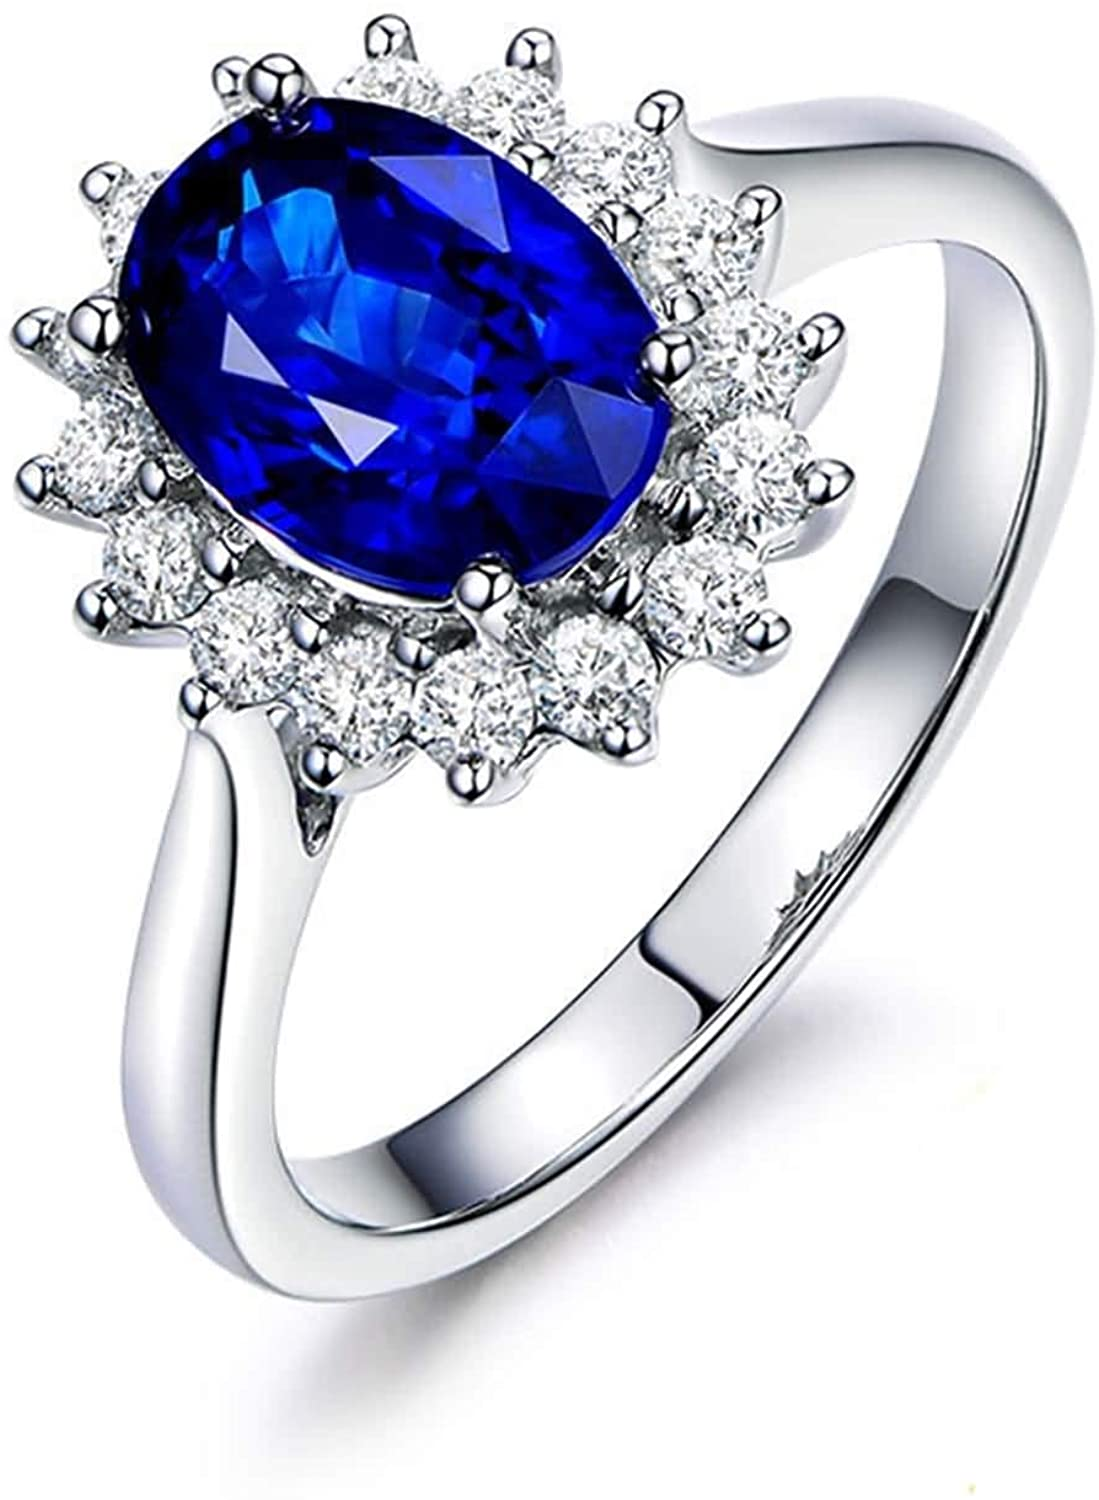 AMDXD Women Ring 18K White Gold, Halo 0.56ct Oval Sapphire with 0.12ct Diamond Anniversary Ring Bands for Women White Gold Size 9